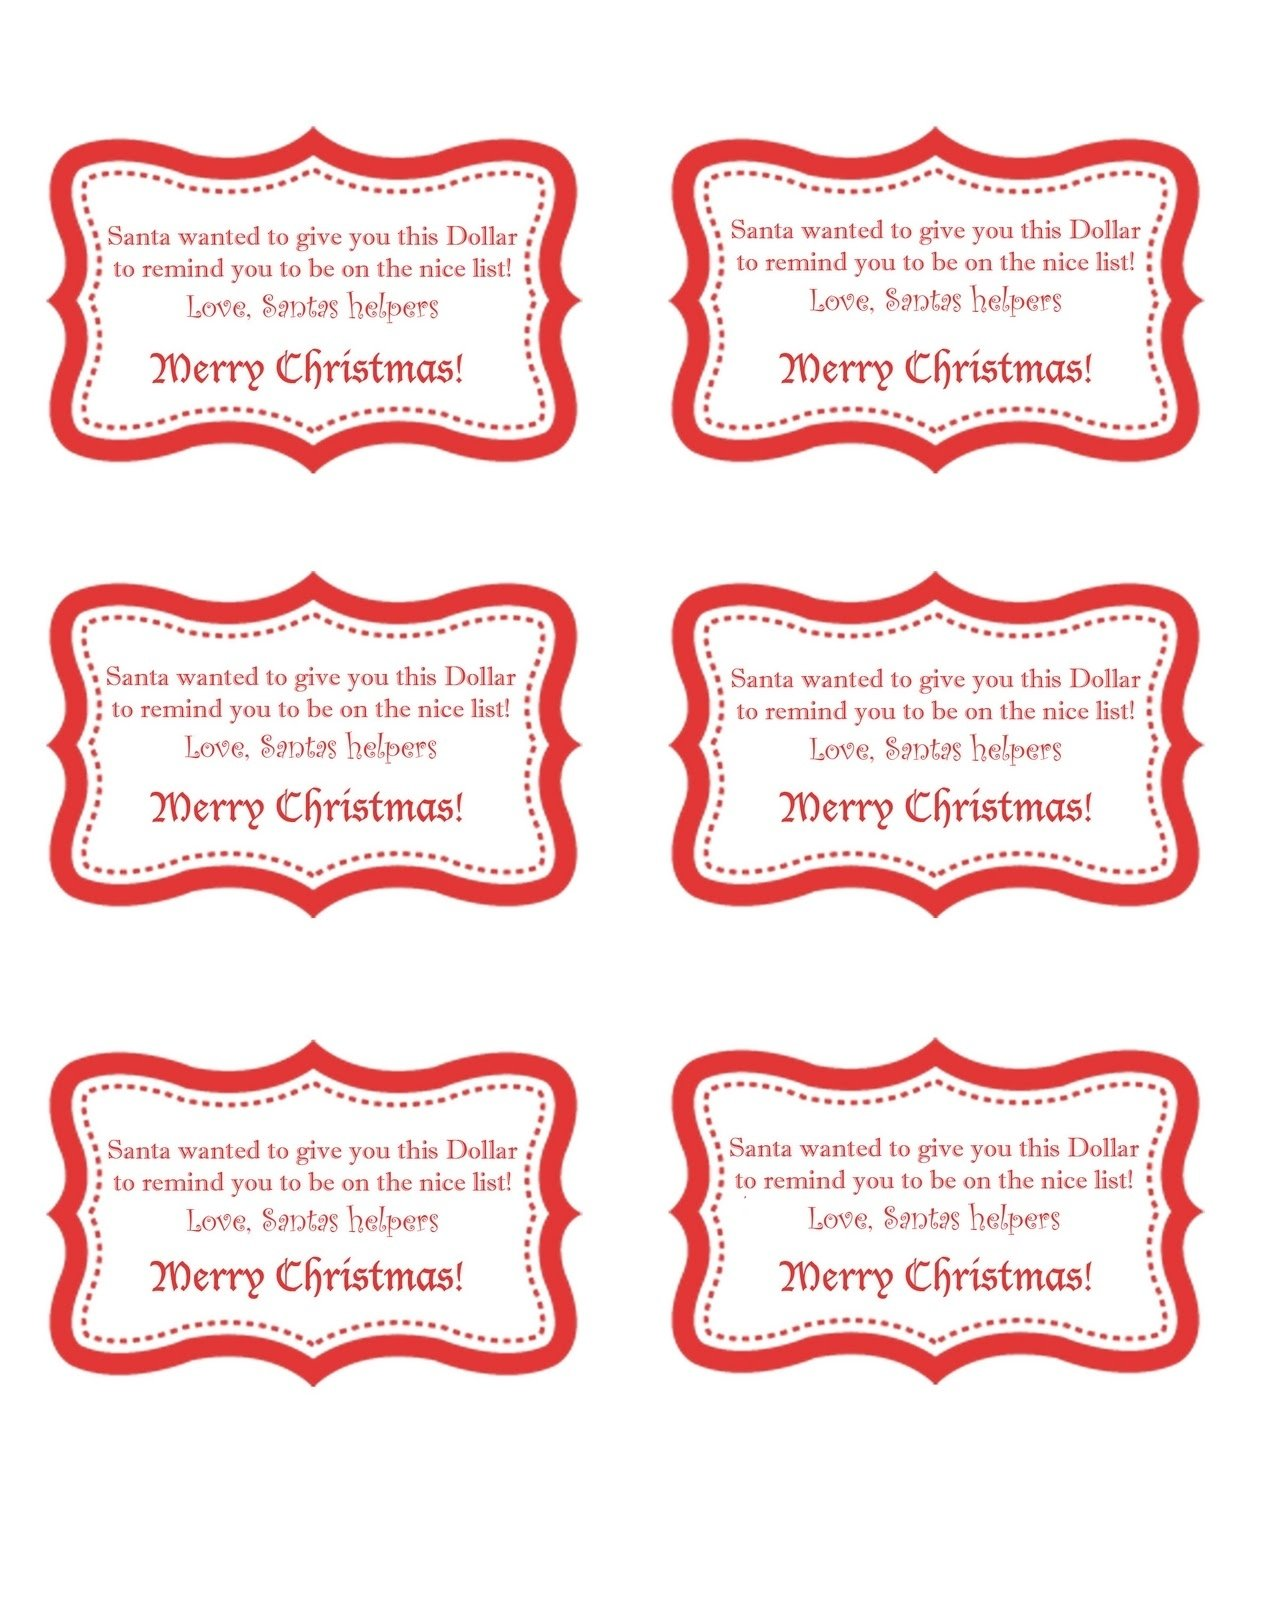 10 Fashionable Christmas Scavenger Hunt Ideas For Adults pillow thought random acts of christmas kindness scavenger hunt 1 2020